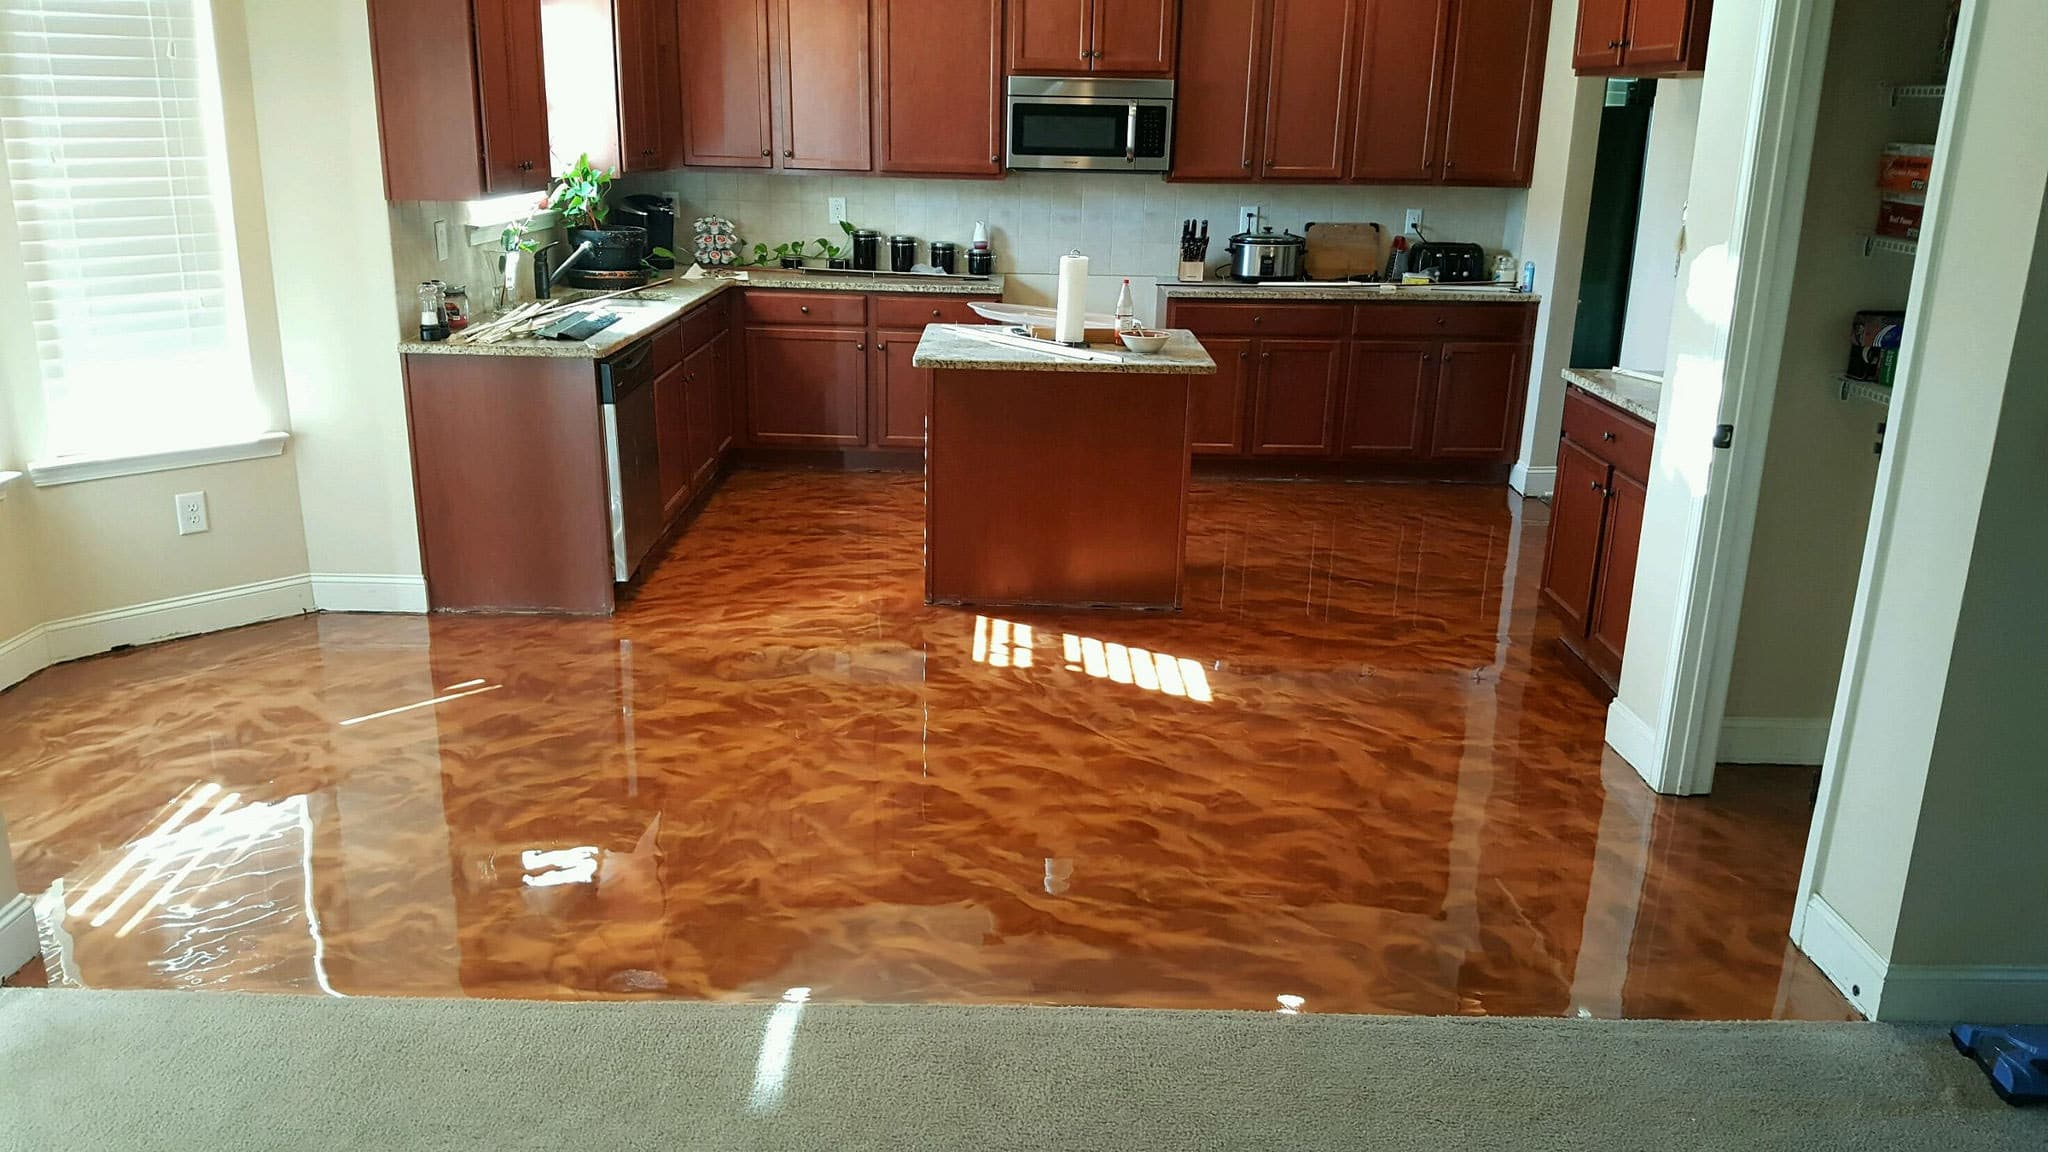 Atx stained concrete stained concrete austin polished concrete metallic epoxy floor austin dailygadgetfo Image collections